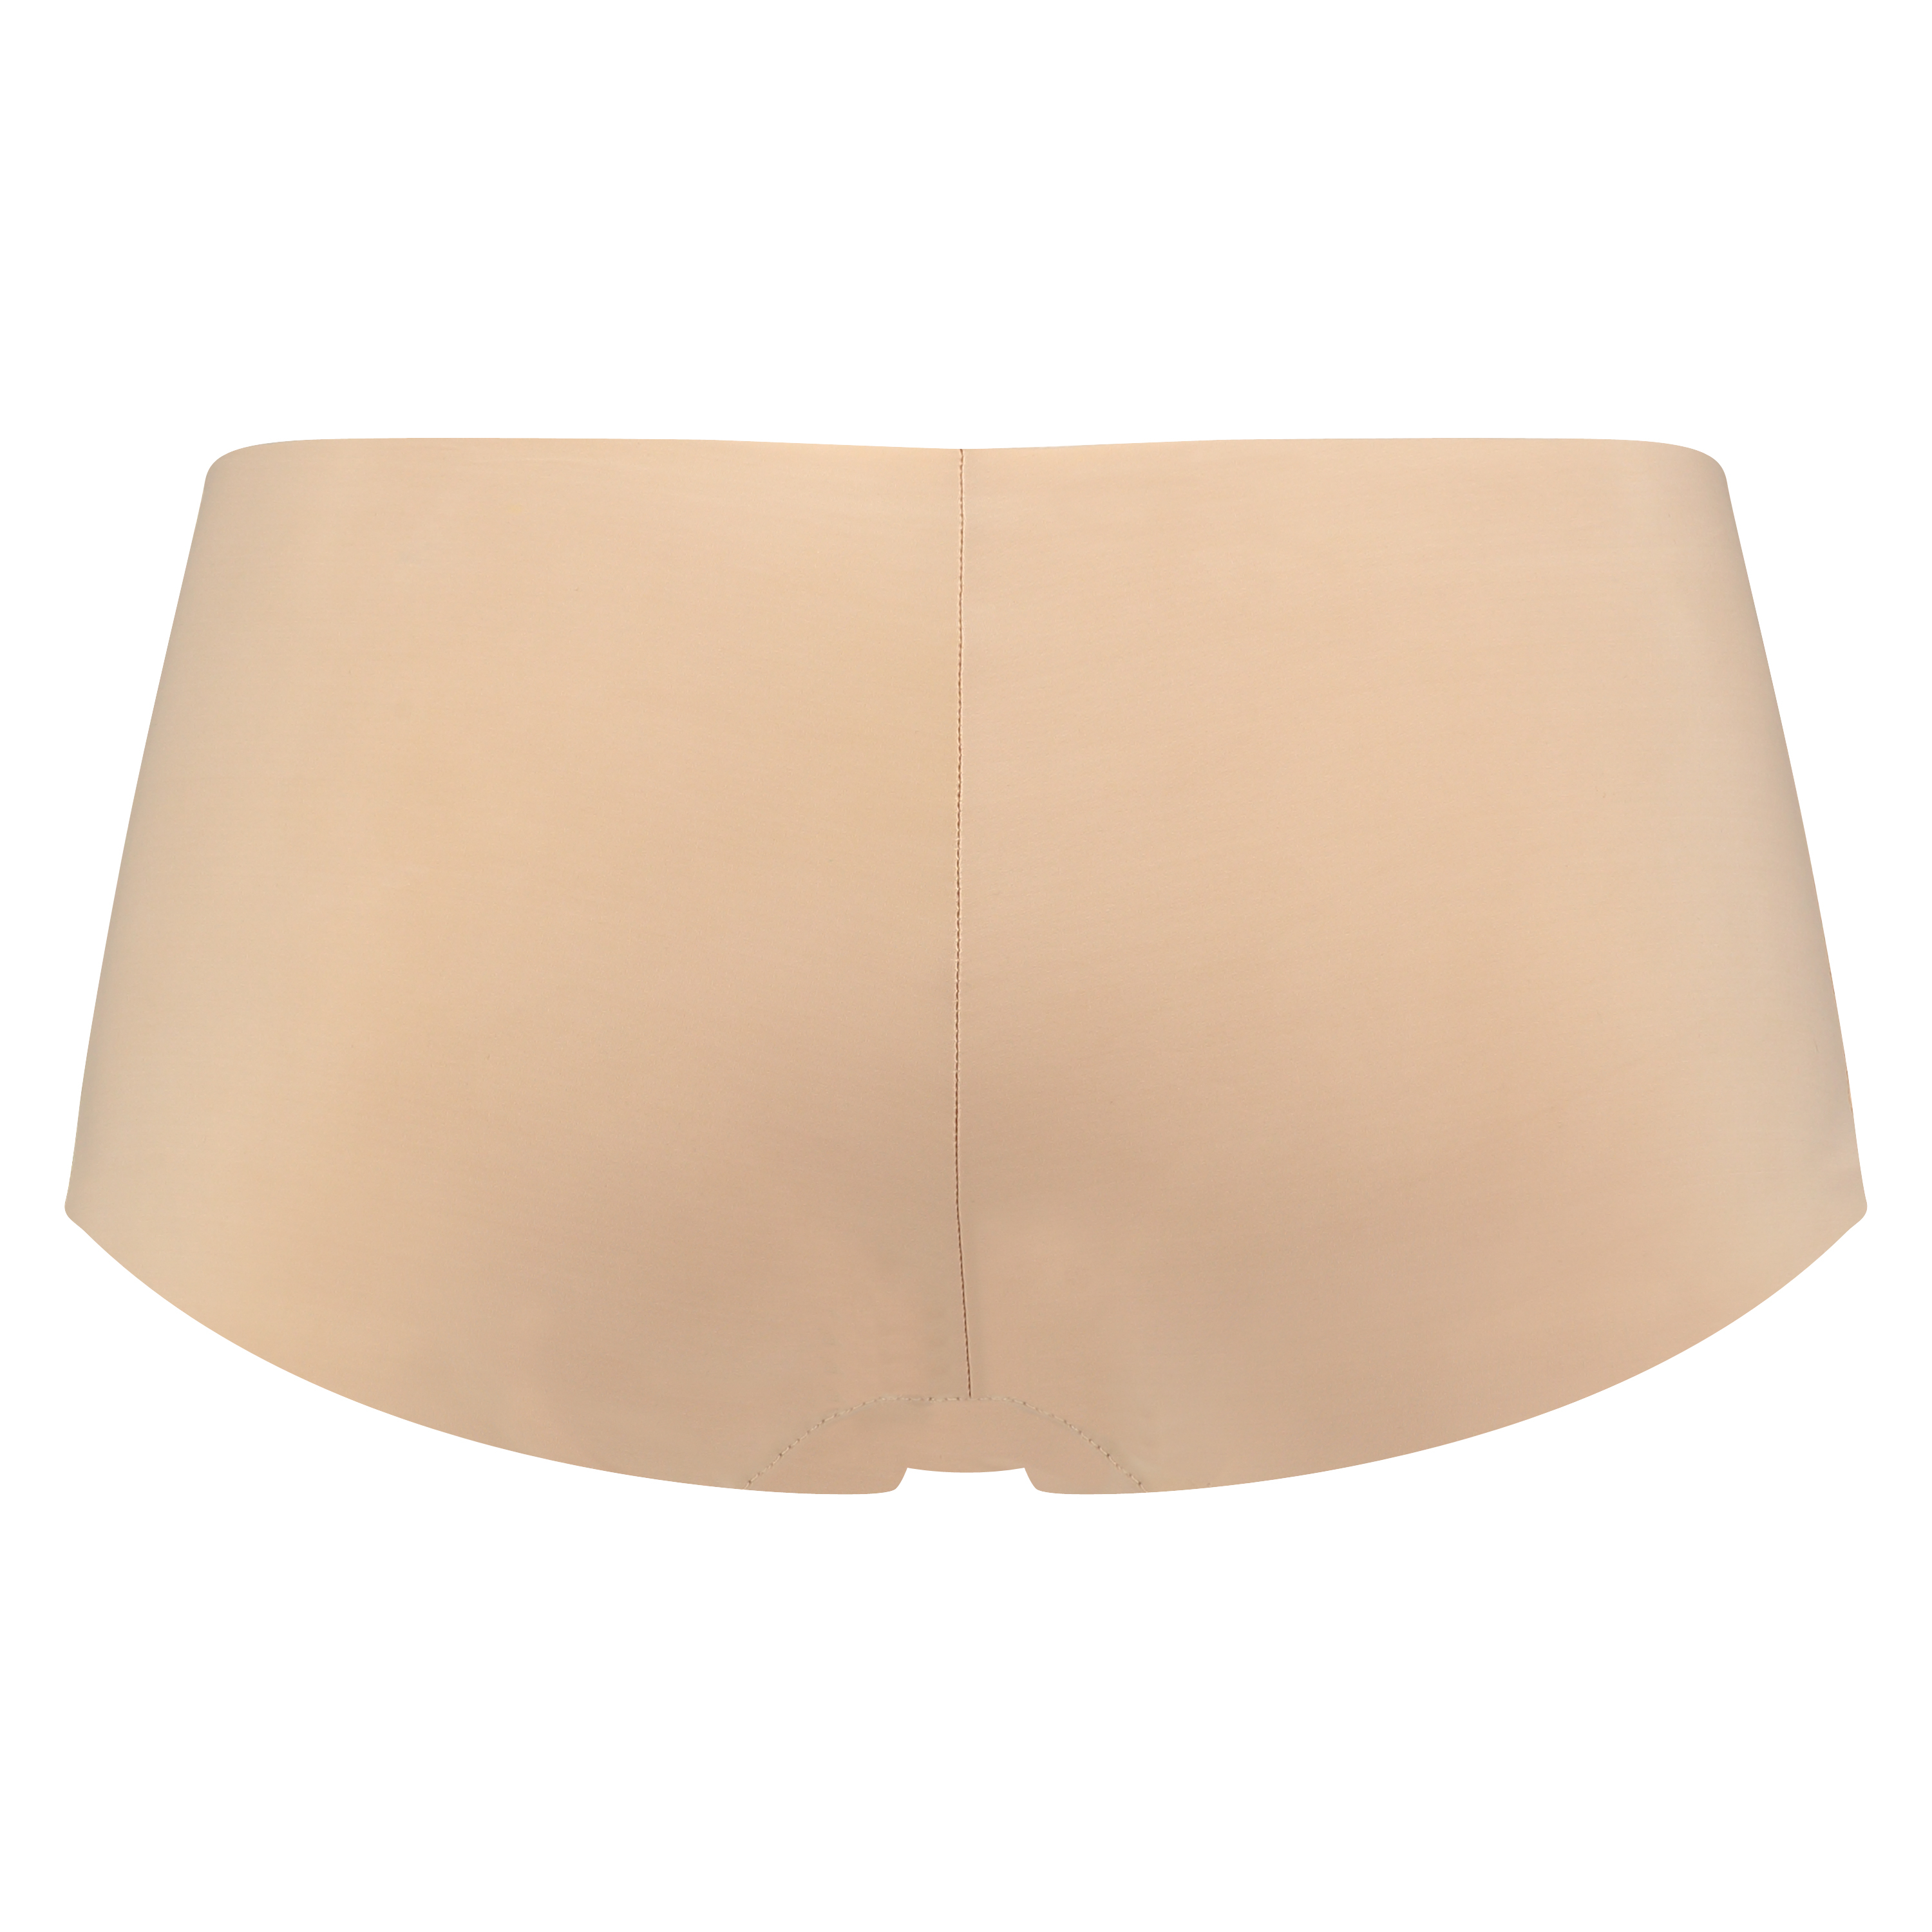 Invisible Boxershorts, Beige, main